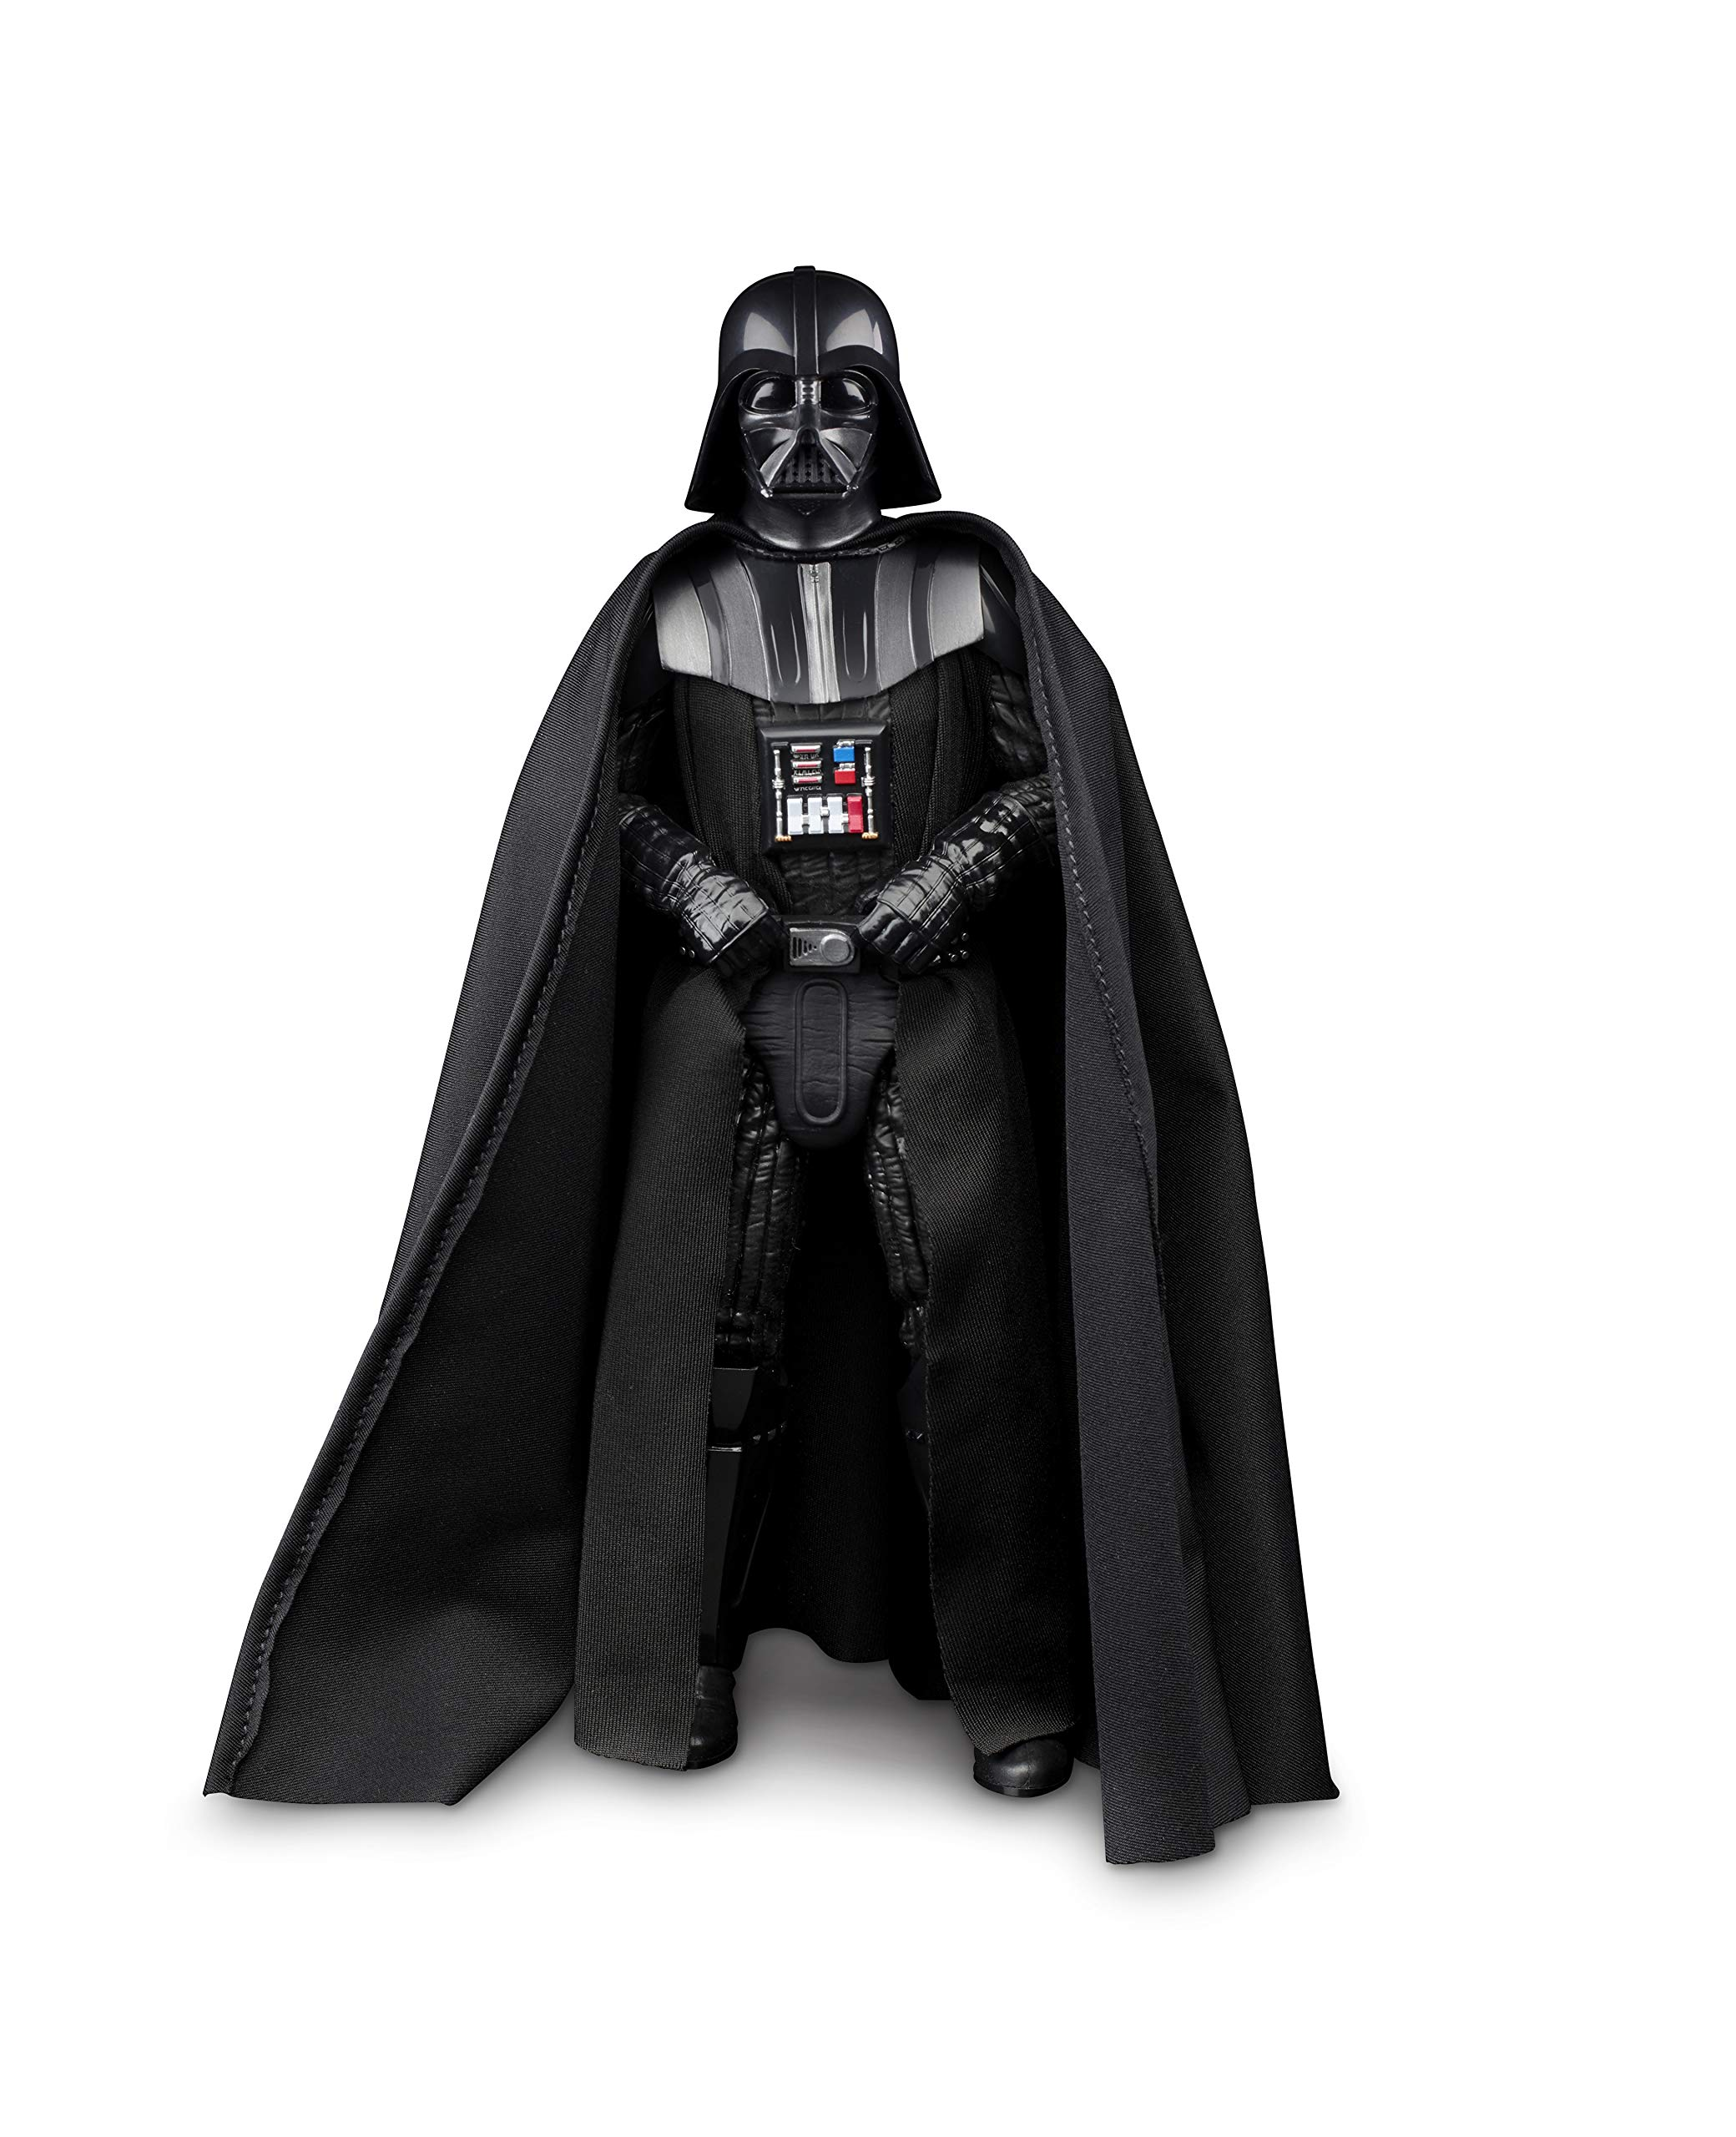 Star Wars The Black Series Hyperreal Episode V The Empire Strikes Back 8 Scale Darth Vader Action Figure Collectible Toys